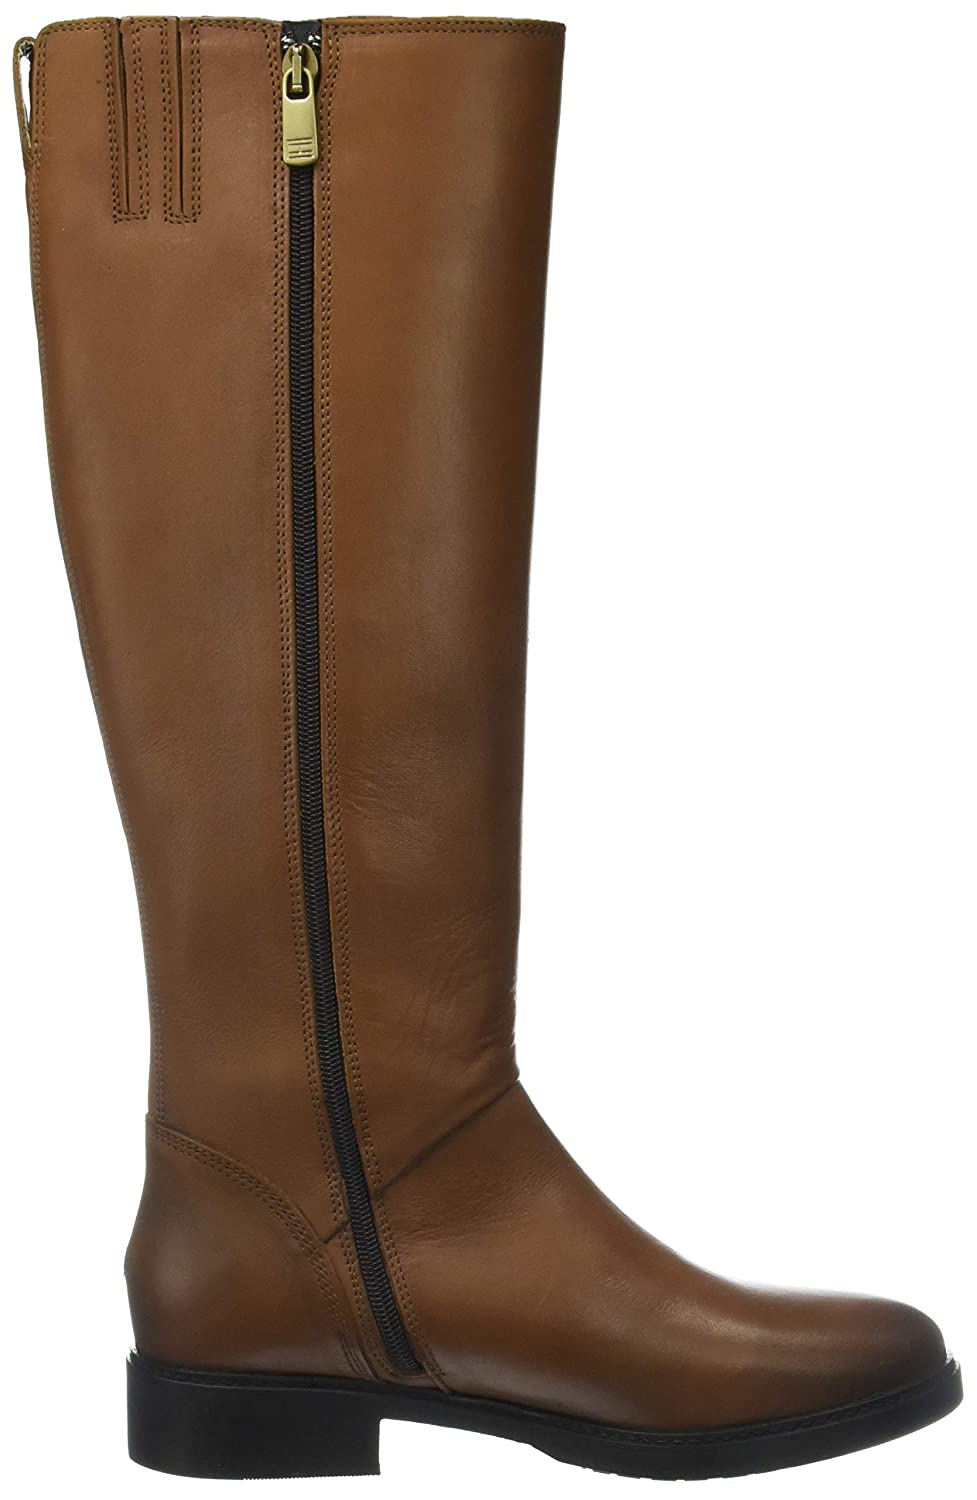 Tommy Hilfiger Damen Basic Th Riding Stiefel Stiefel Stiefel Leather Hohe Stiefel 85e1c3